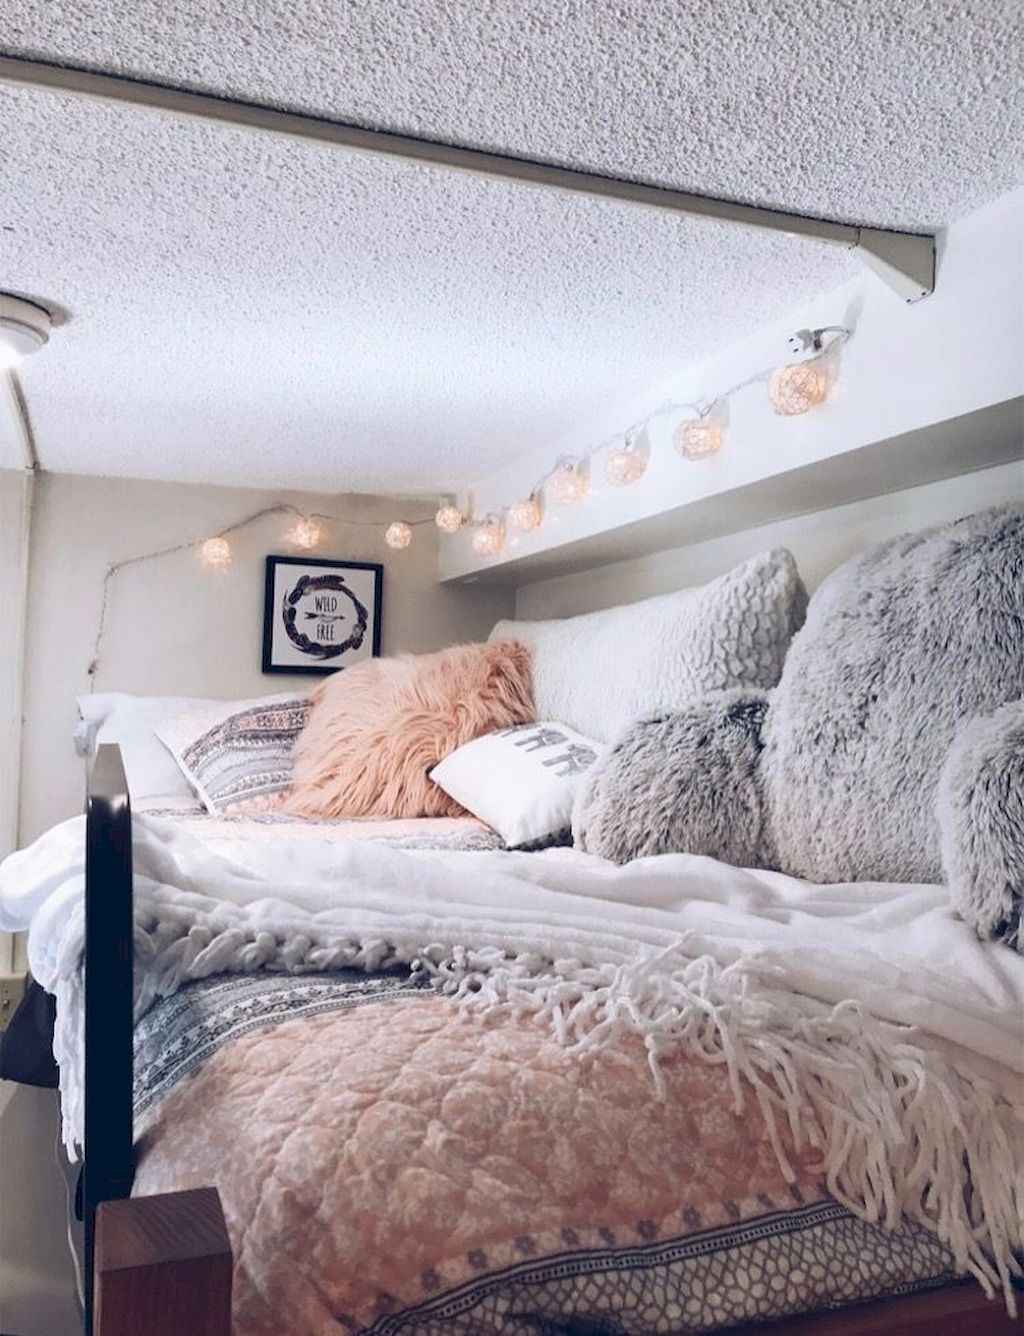 Clever college apartment decorating ideas on a budget (2)